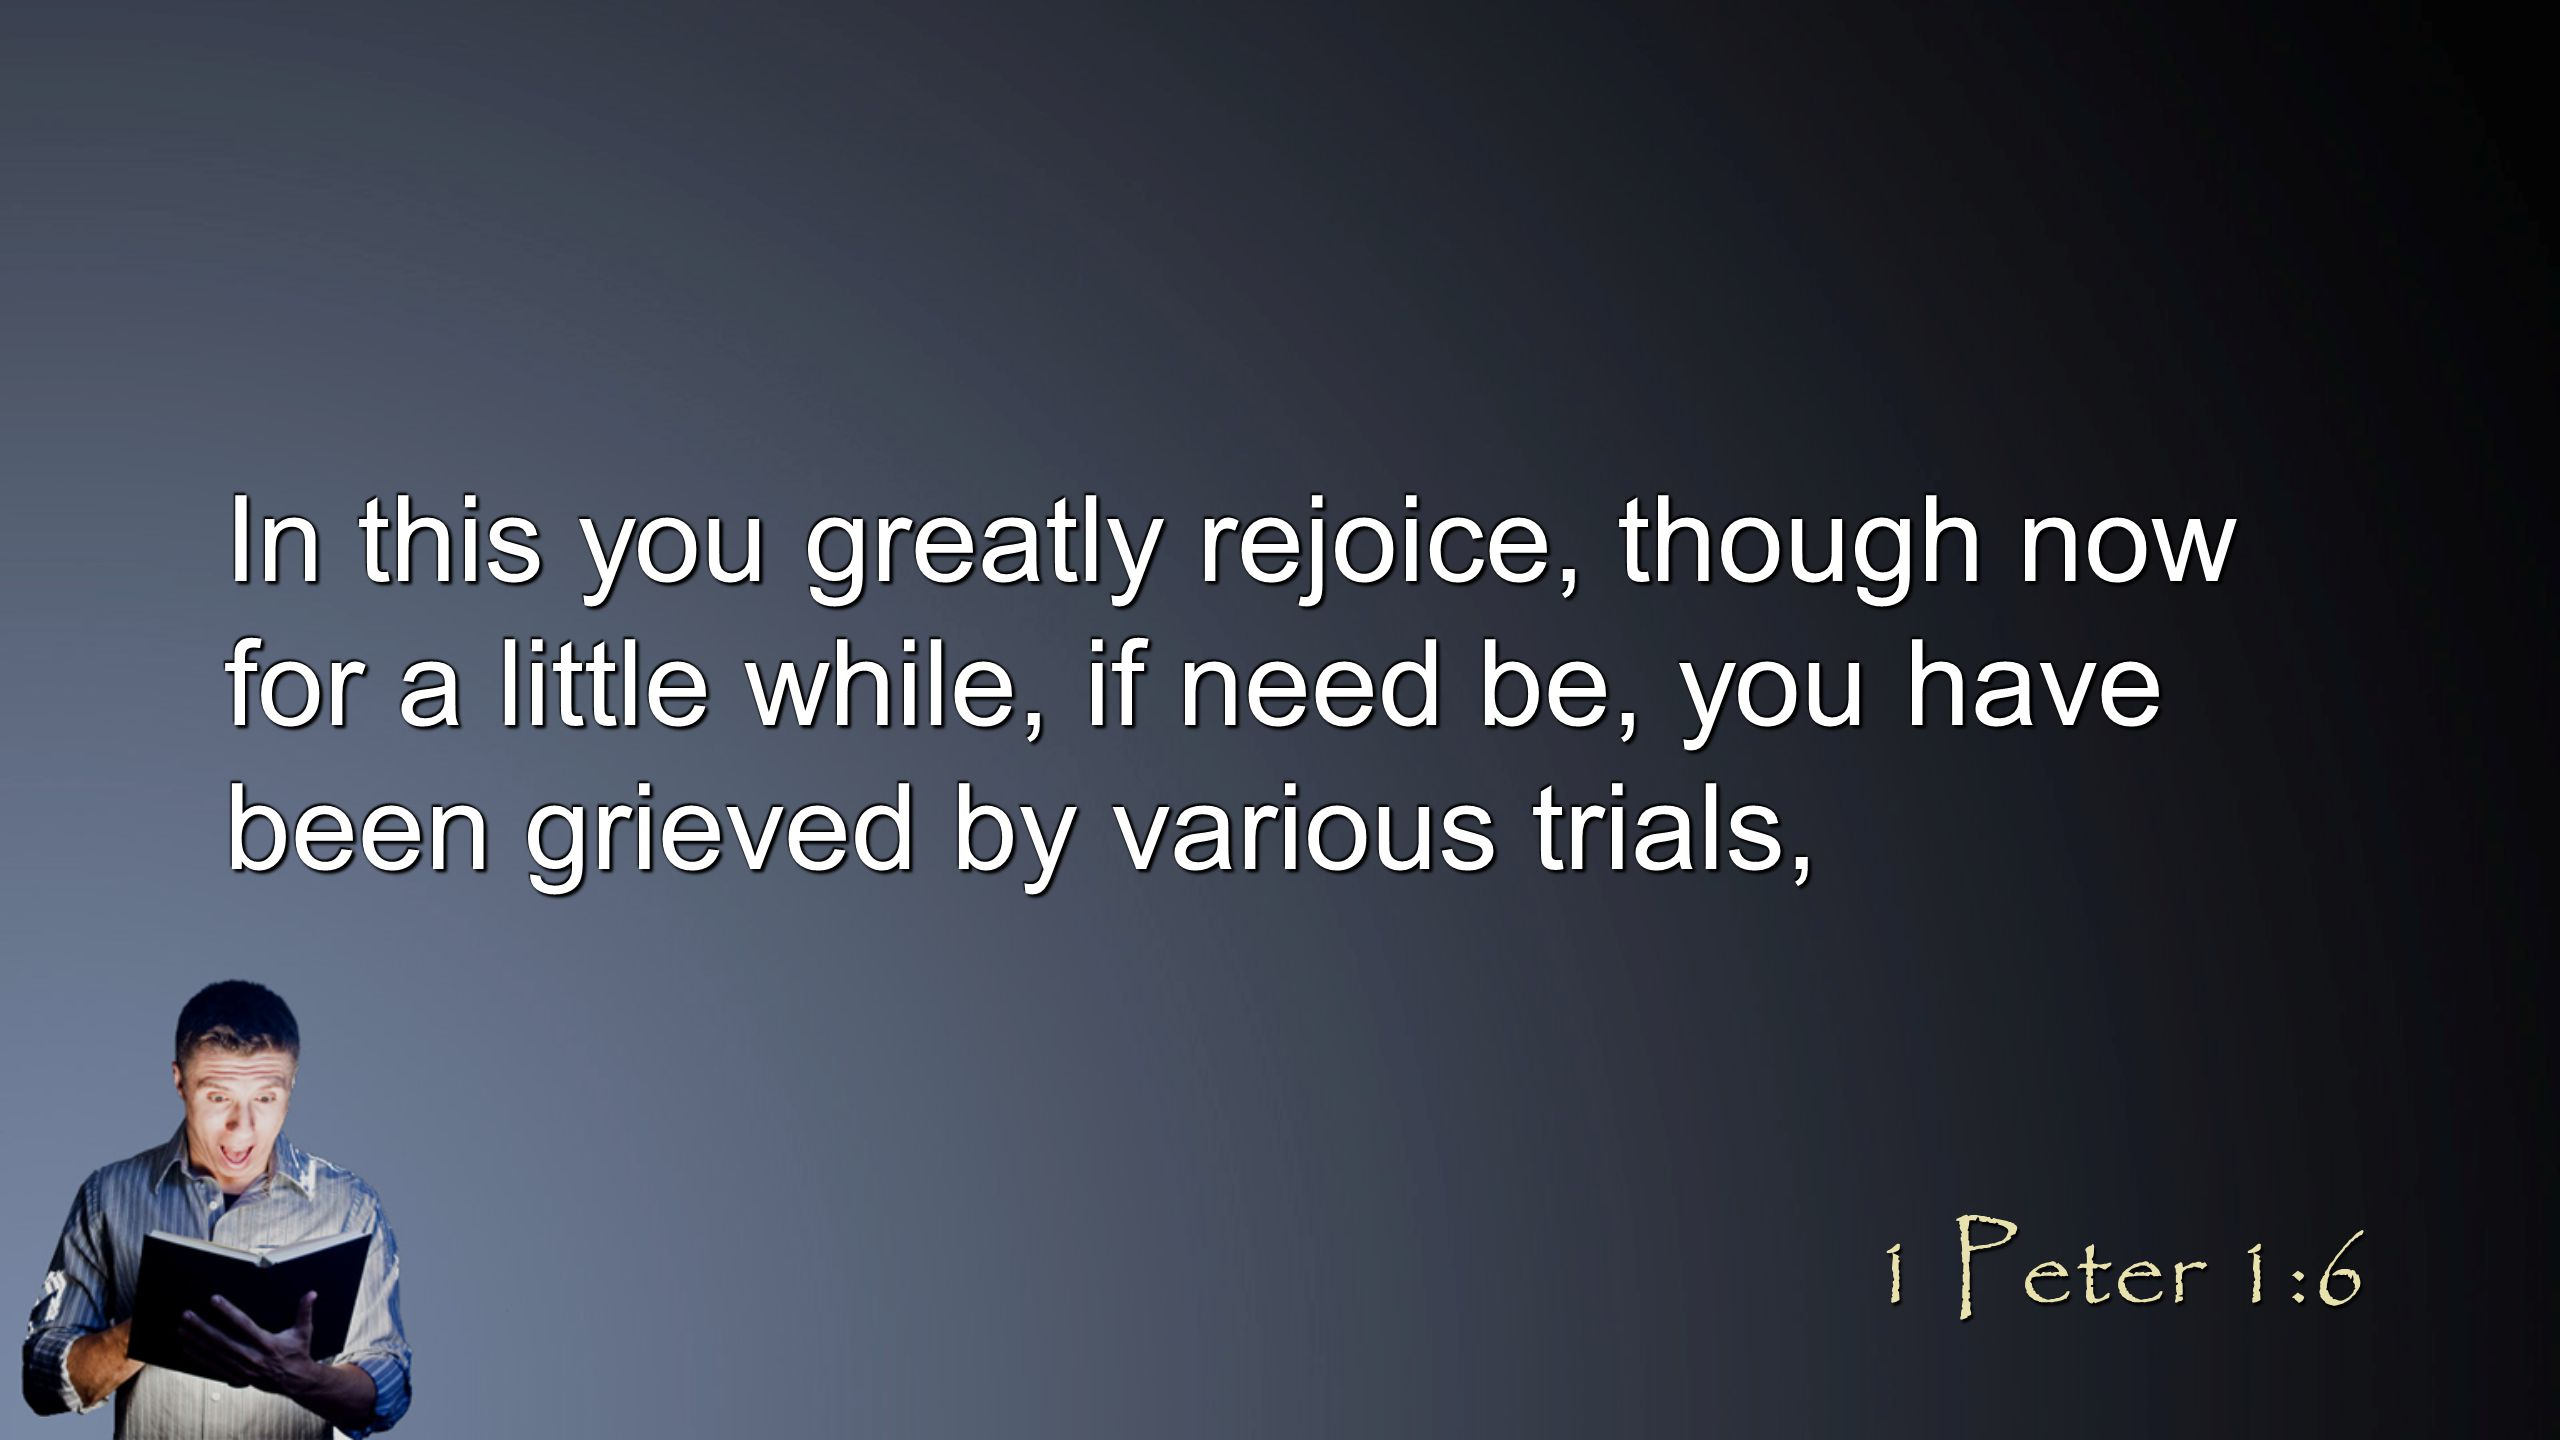 In this you greatly rejoice, though now for a little while, if need be, you have been grieved by various trials, 1 Peter 1:6